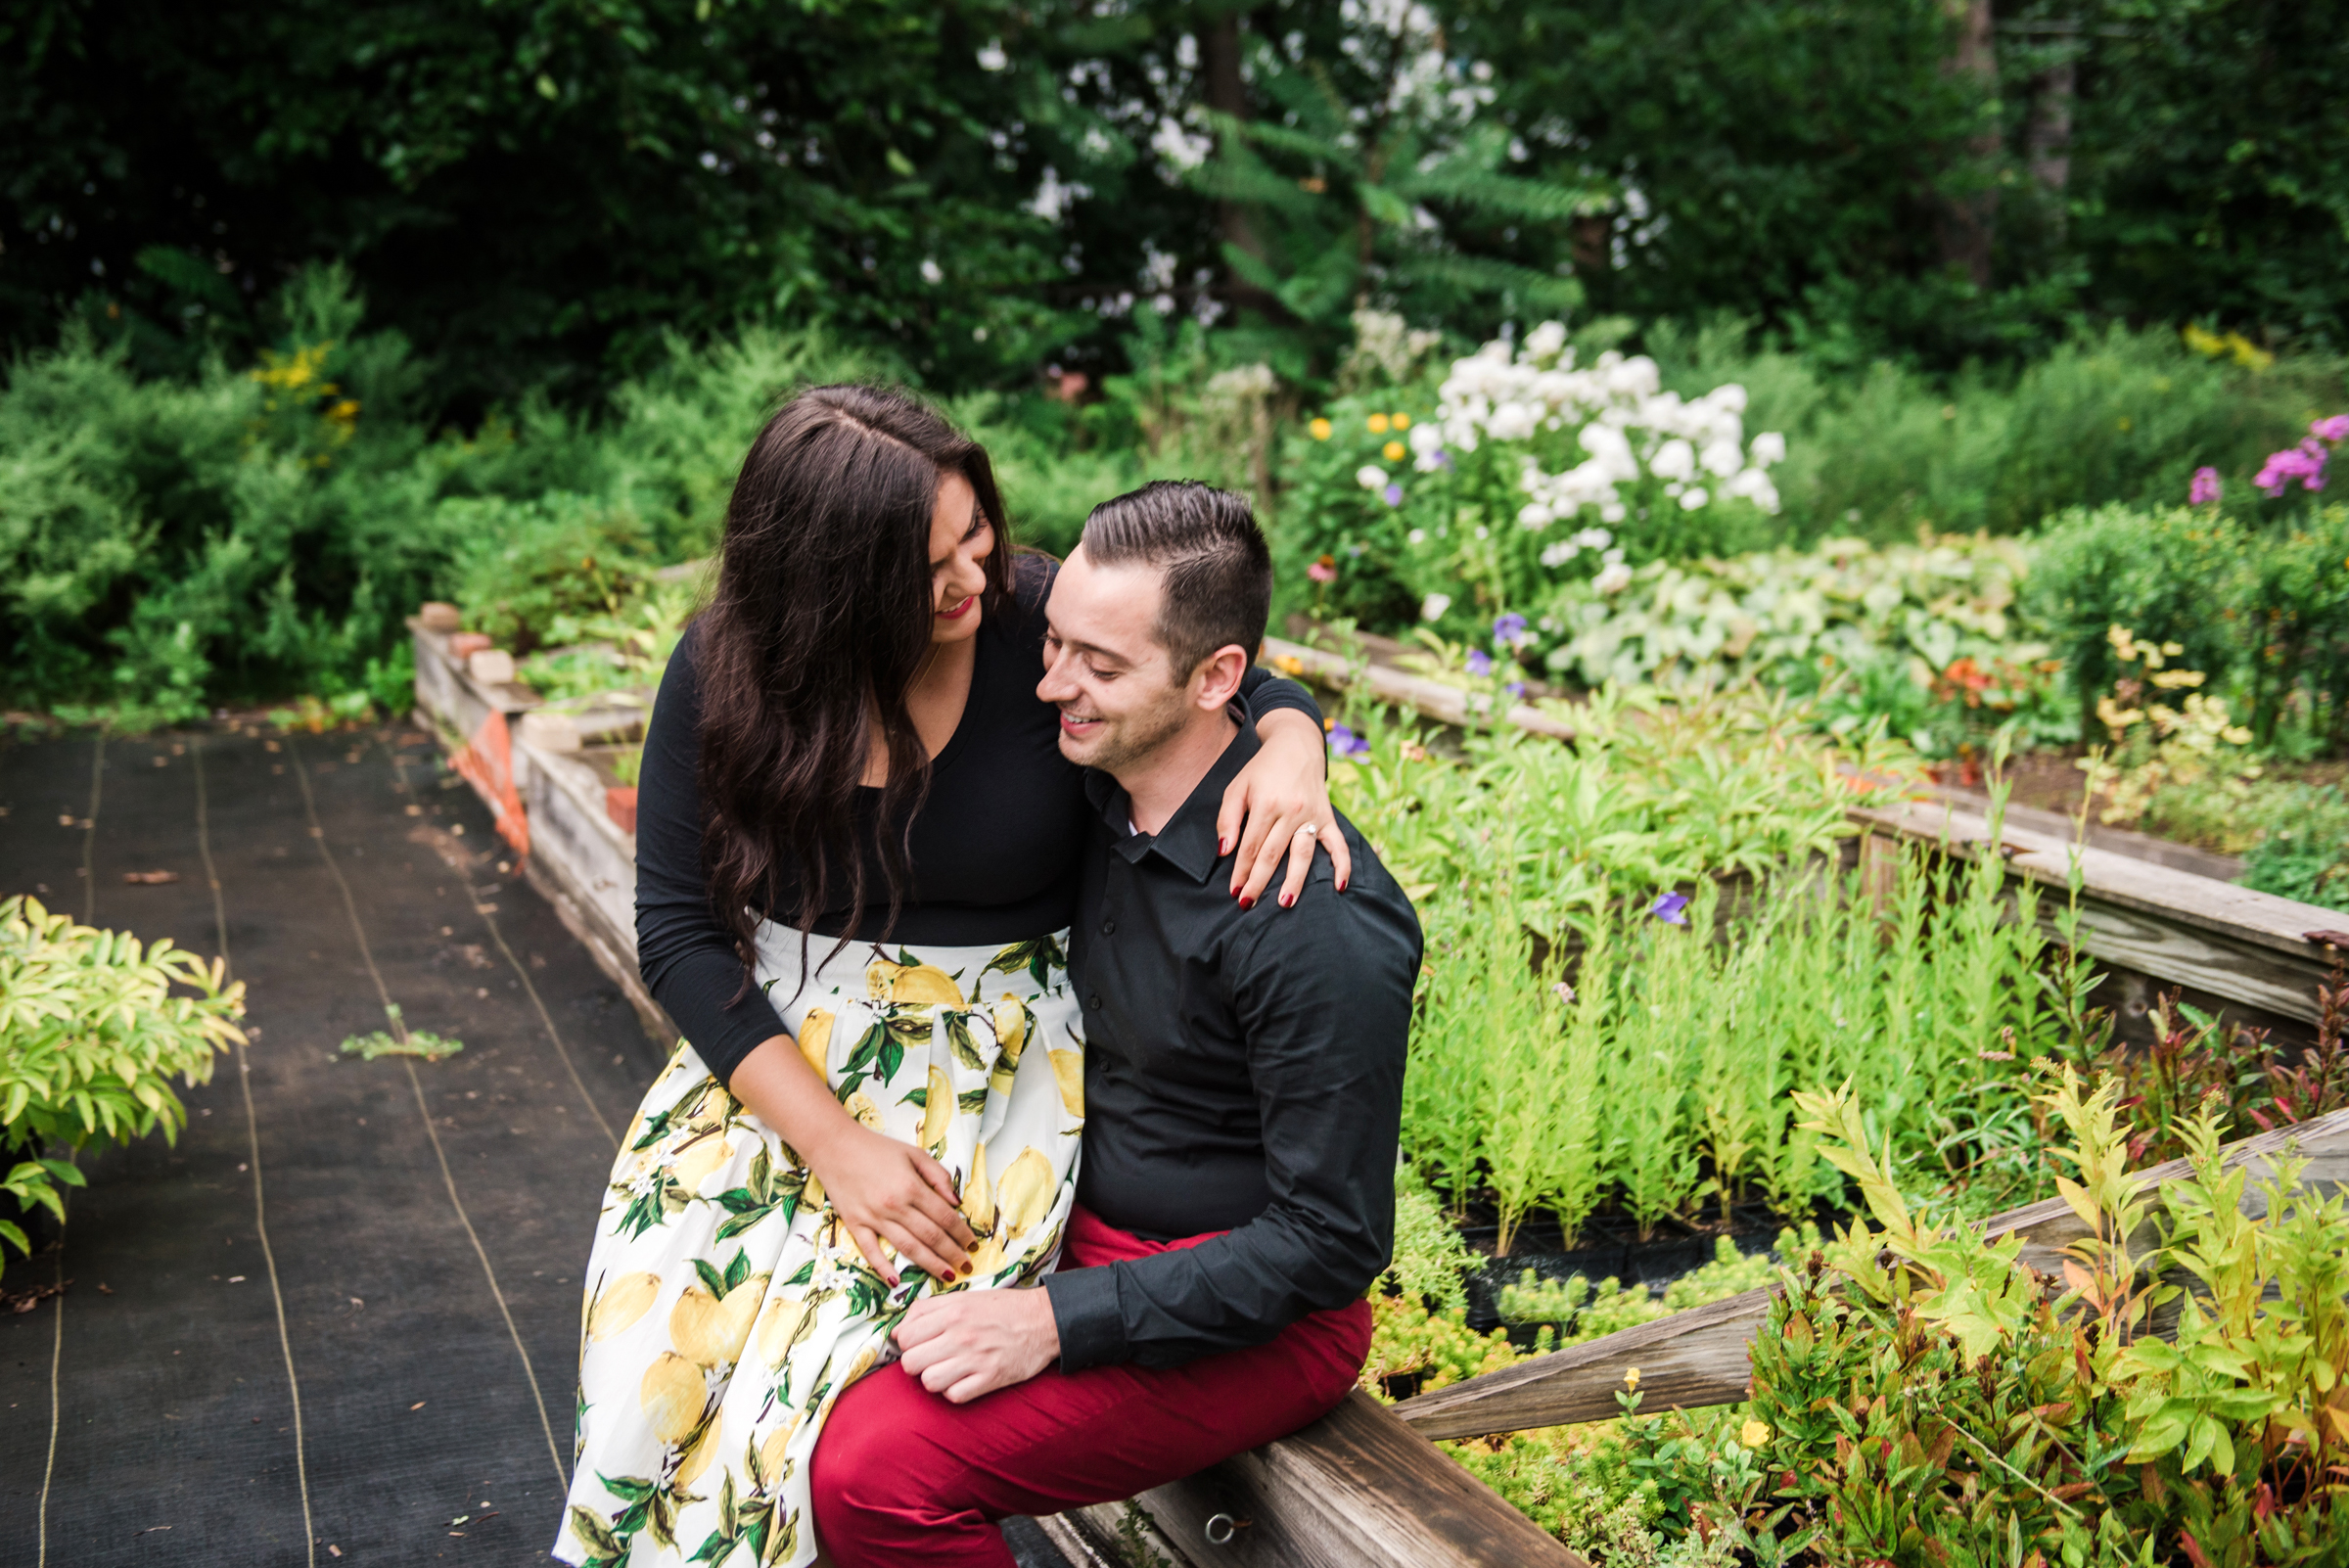 George_Eastman_House_Rochester_Engagement_Session_JILL_STUDIO_Rochester_NY_Photographer_DSC_6476.jpg